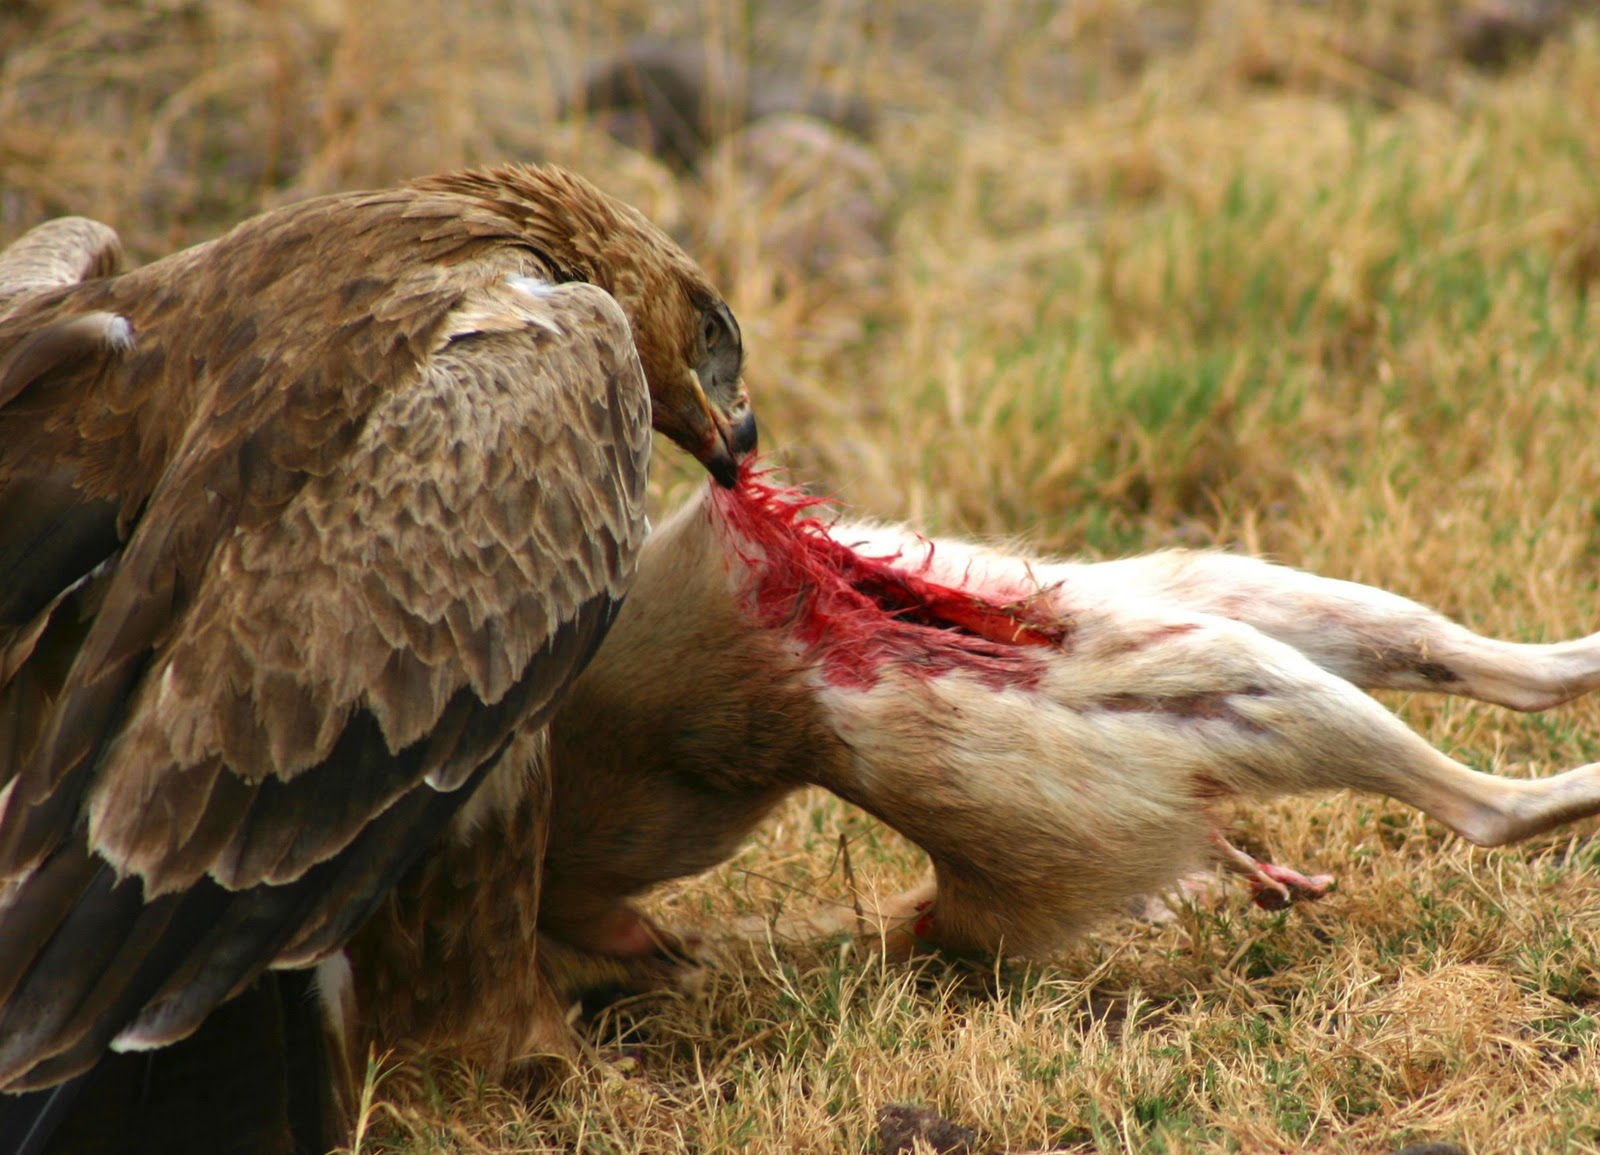 Eagle eating meat - photo#23